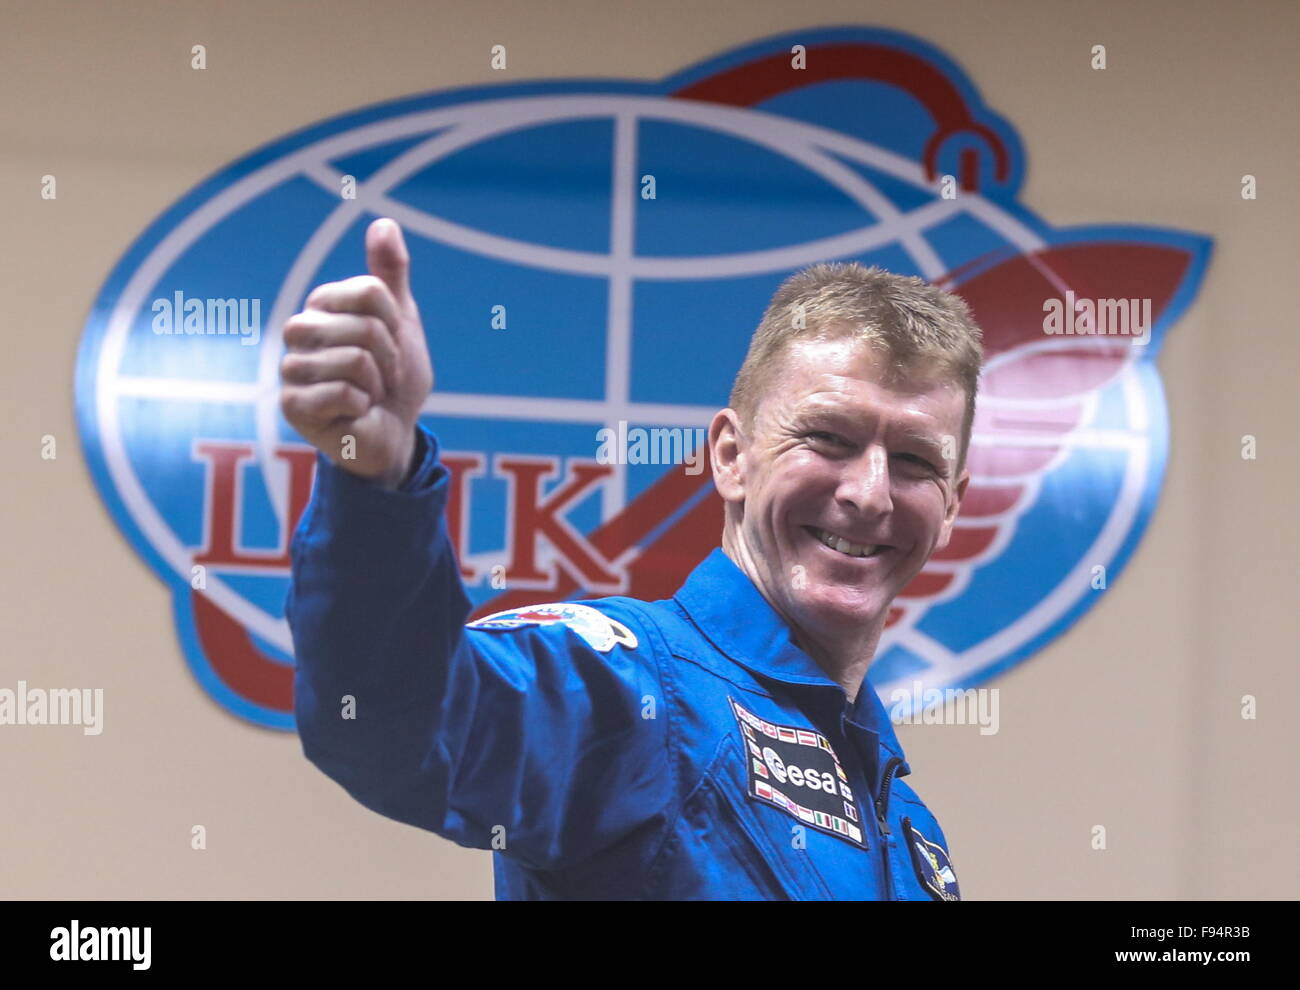 Baikonur, Kazakhstan. 14th Dec, 2015. ISS Expedition 47/46 crew member, ESA astronaut Timothy Peake of the United - Stock Image